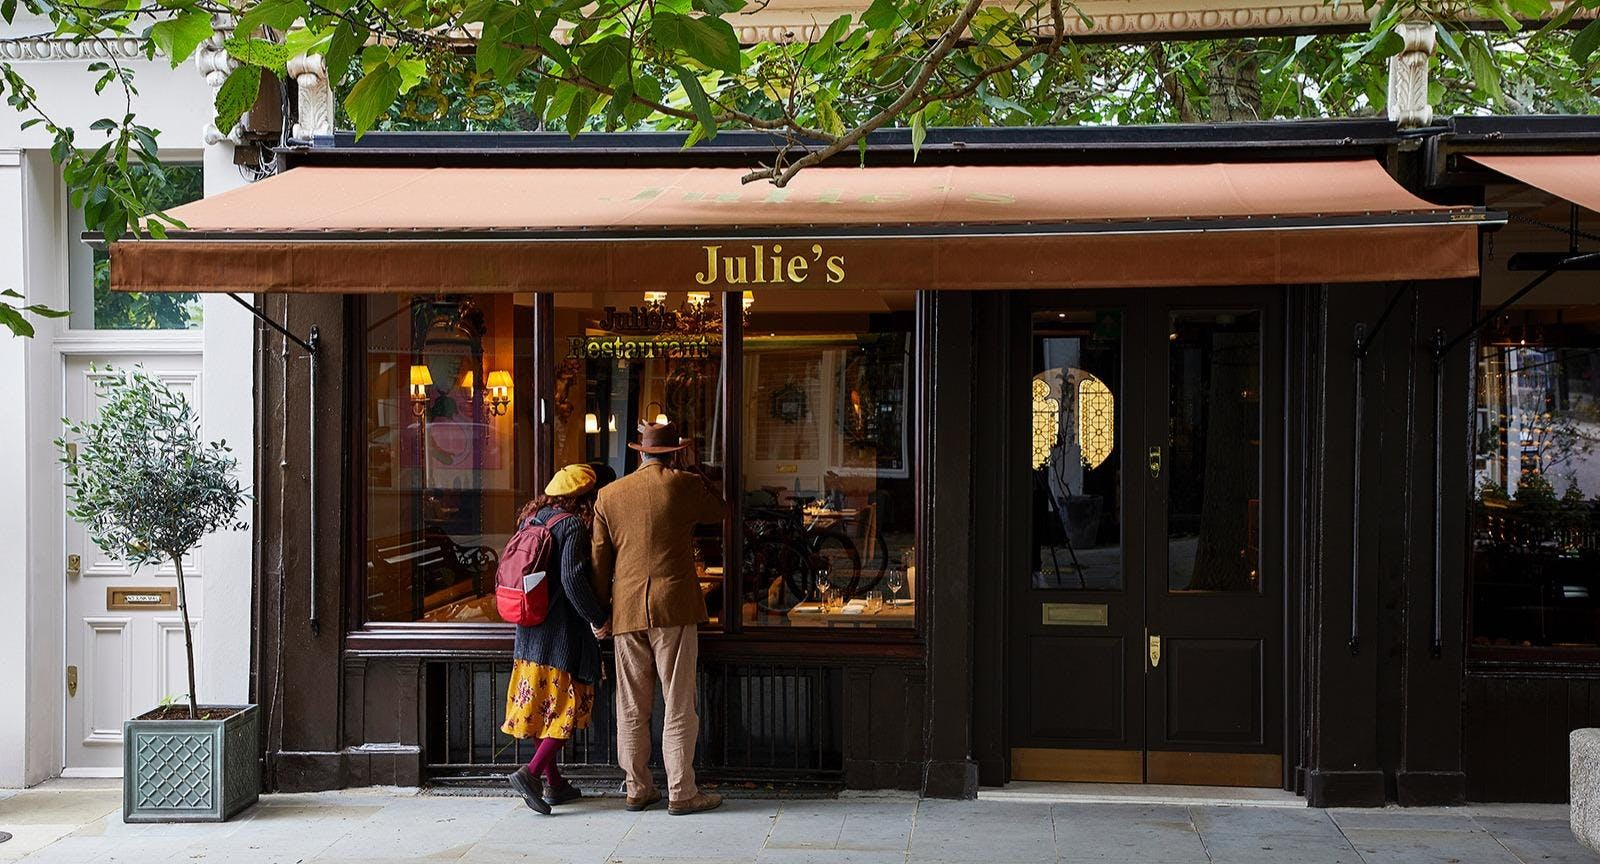 Julie's Restaurant & Champagne Bar